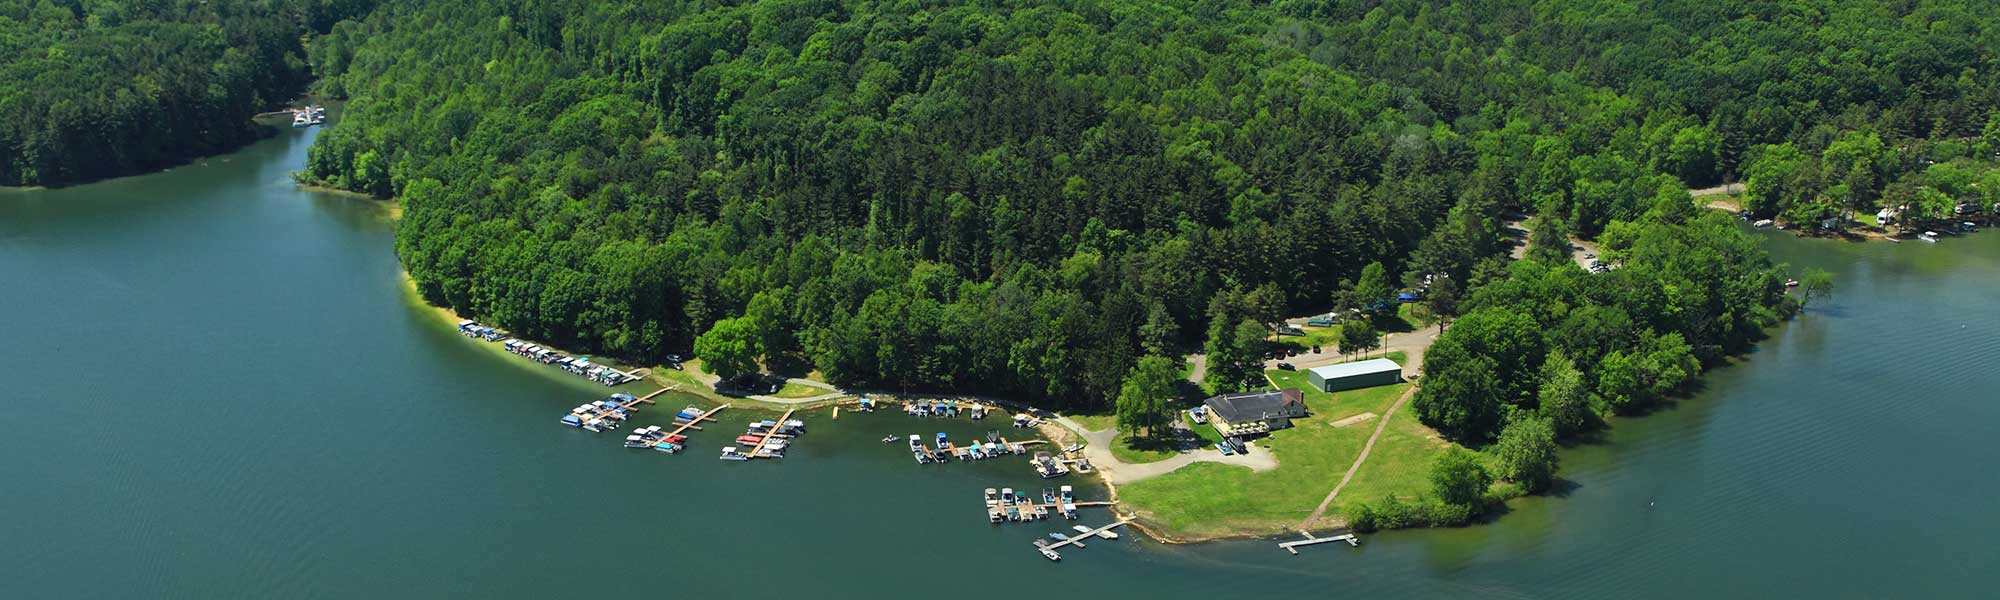 Situated on Beautiful Leesville Lake